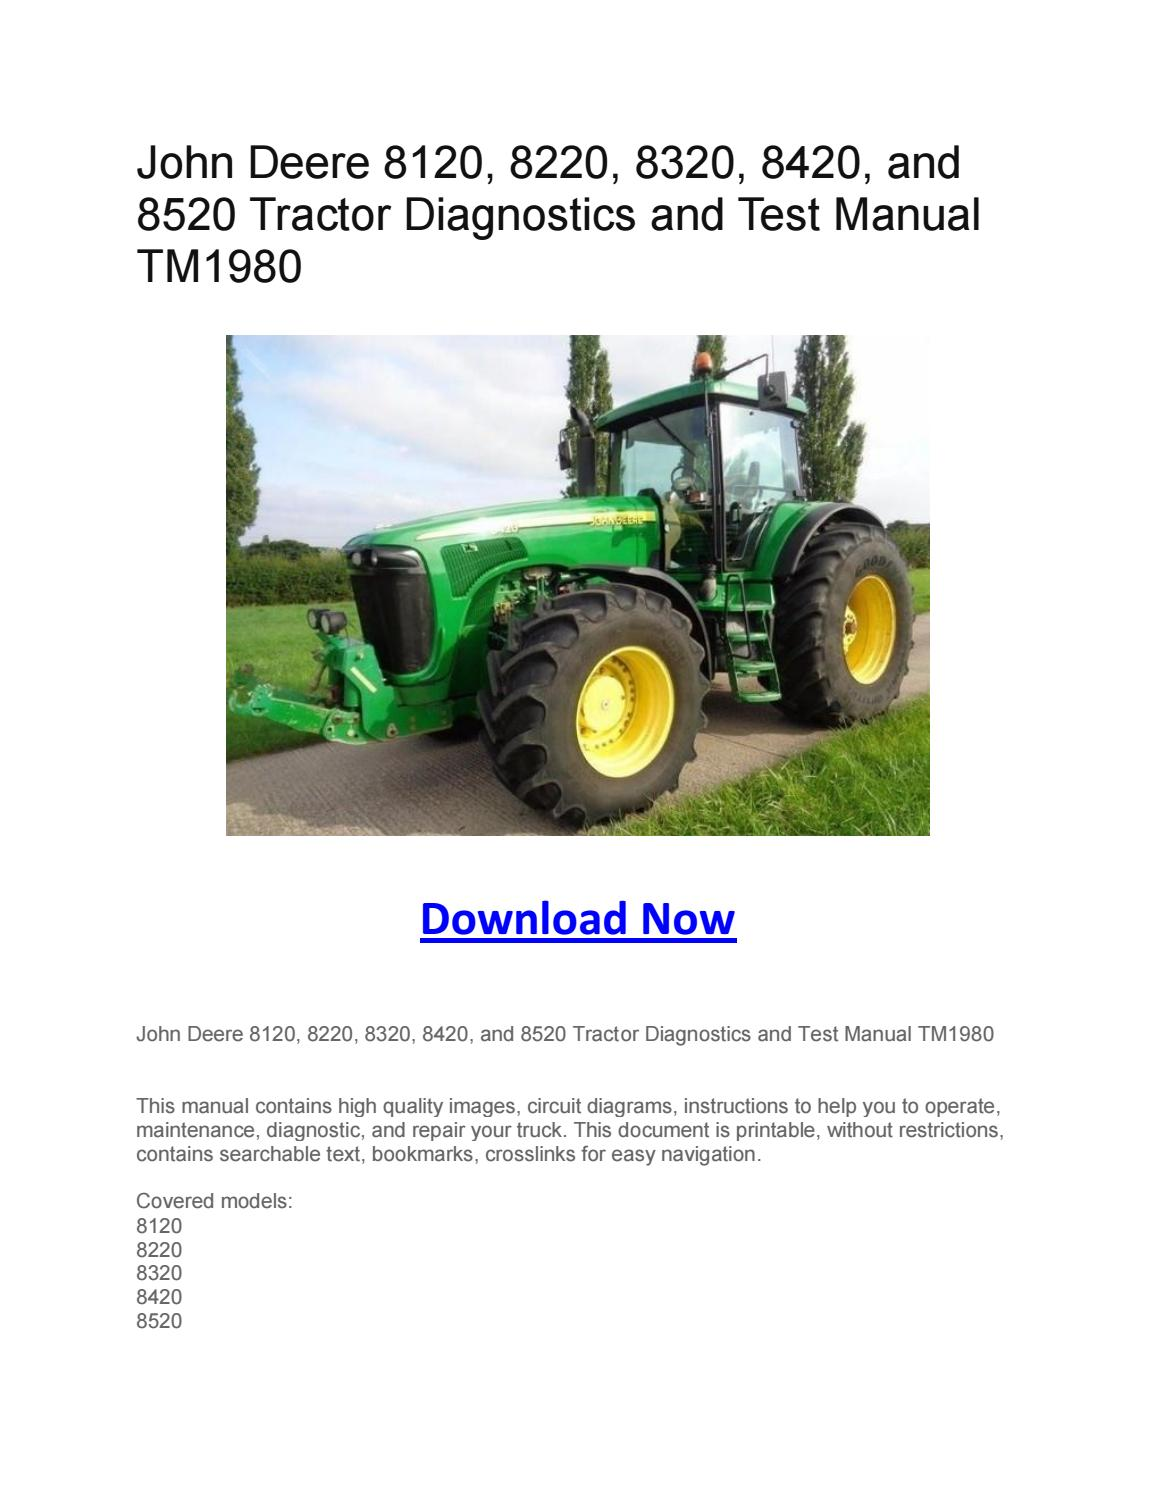 John Deere 8120  8220  8320  8420  And 8520 Tractor Diagnostics And Test Manual Tm1980 By Larry